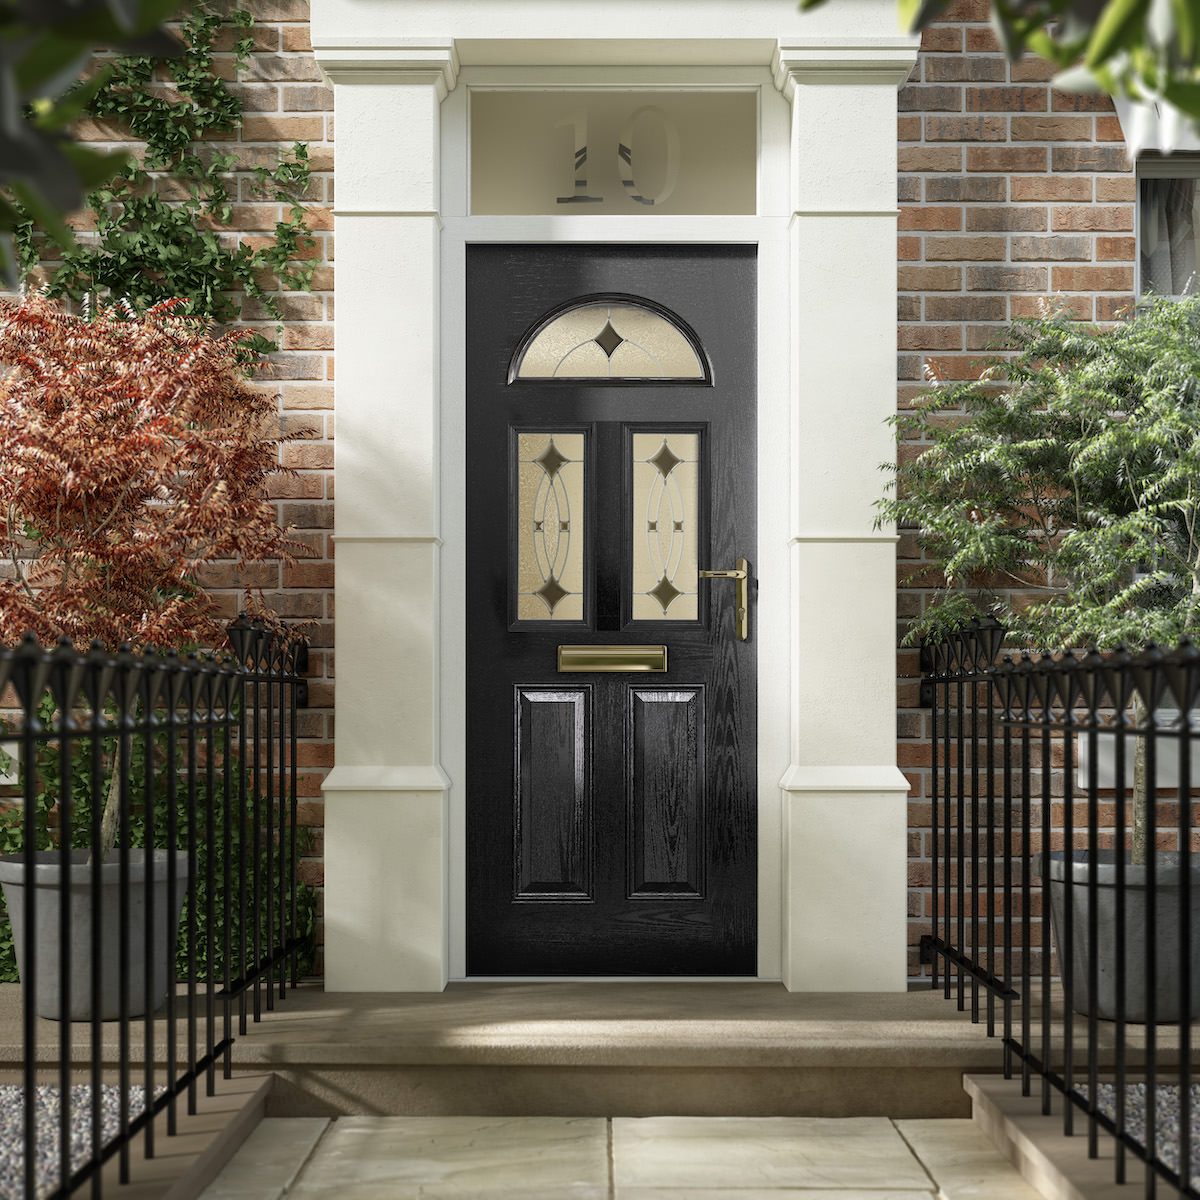 HS trade fabricator distinction doors composite doors for installers east midlands